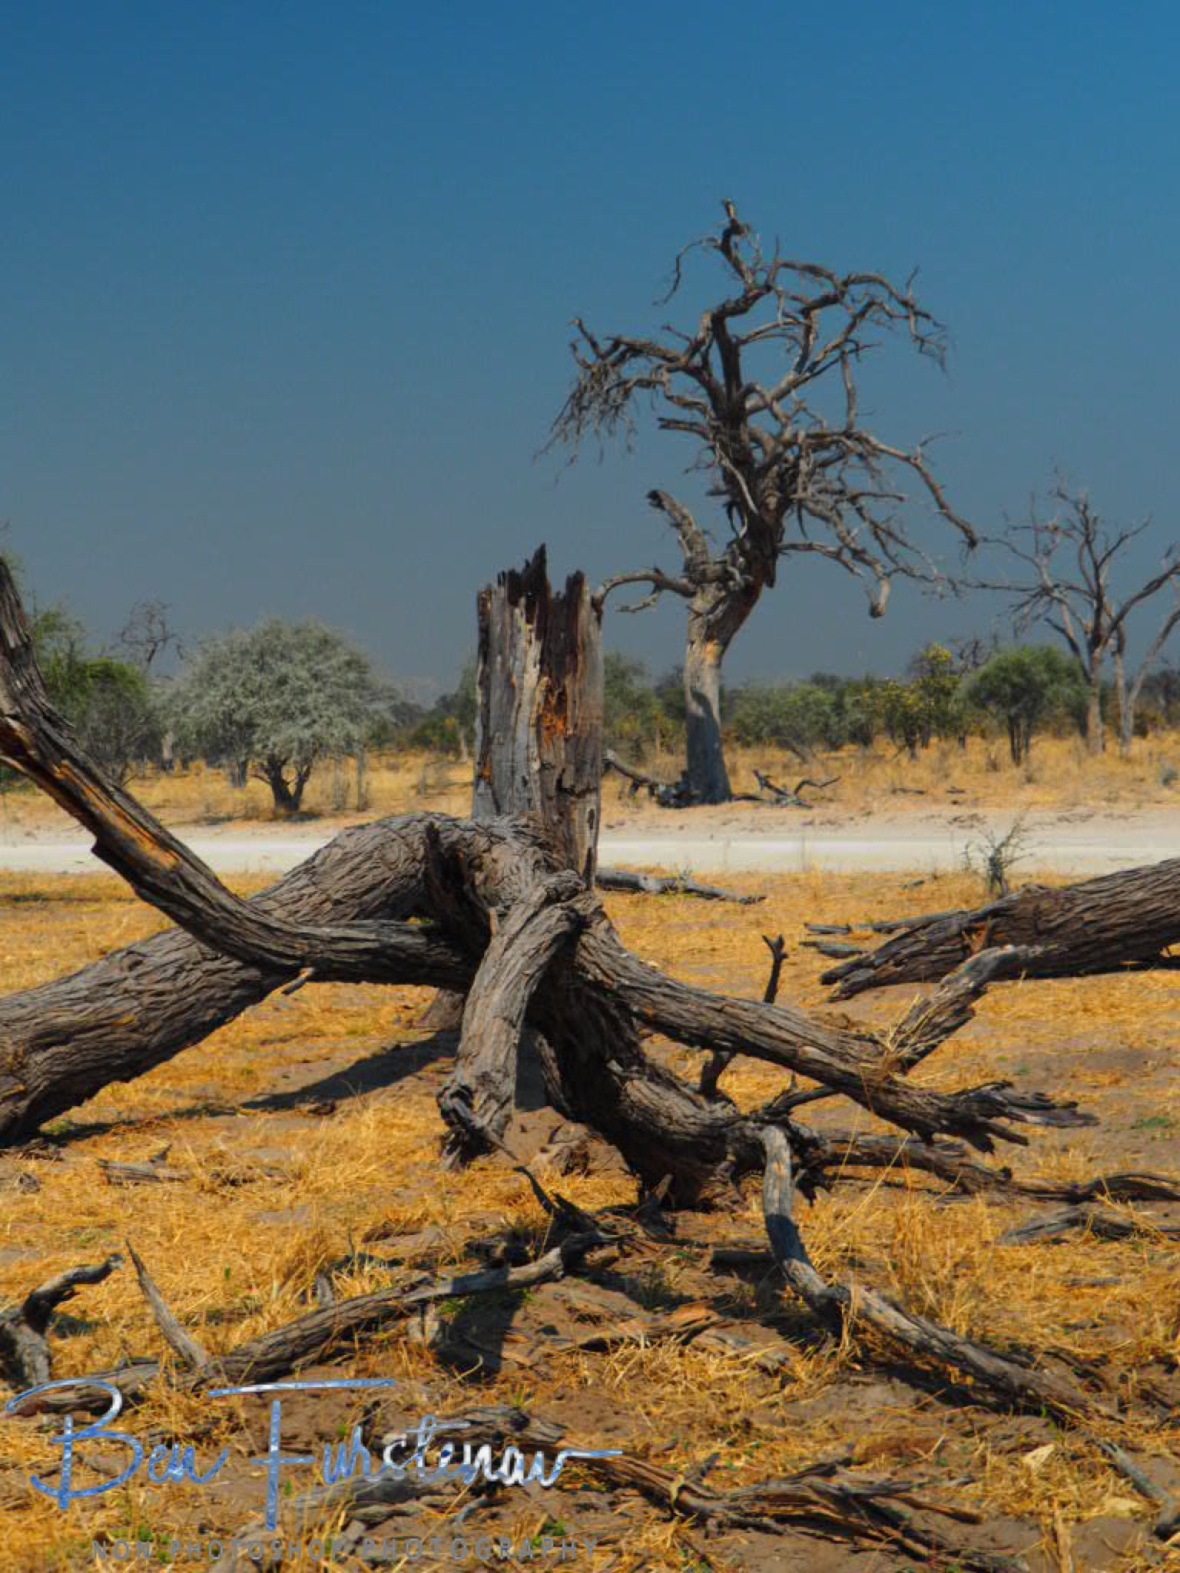 Dry and arid landscape in Moremi National Park, Okavango Delta, Botswana